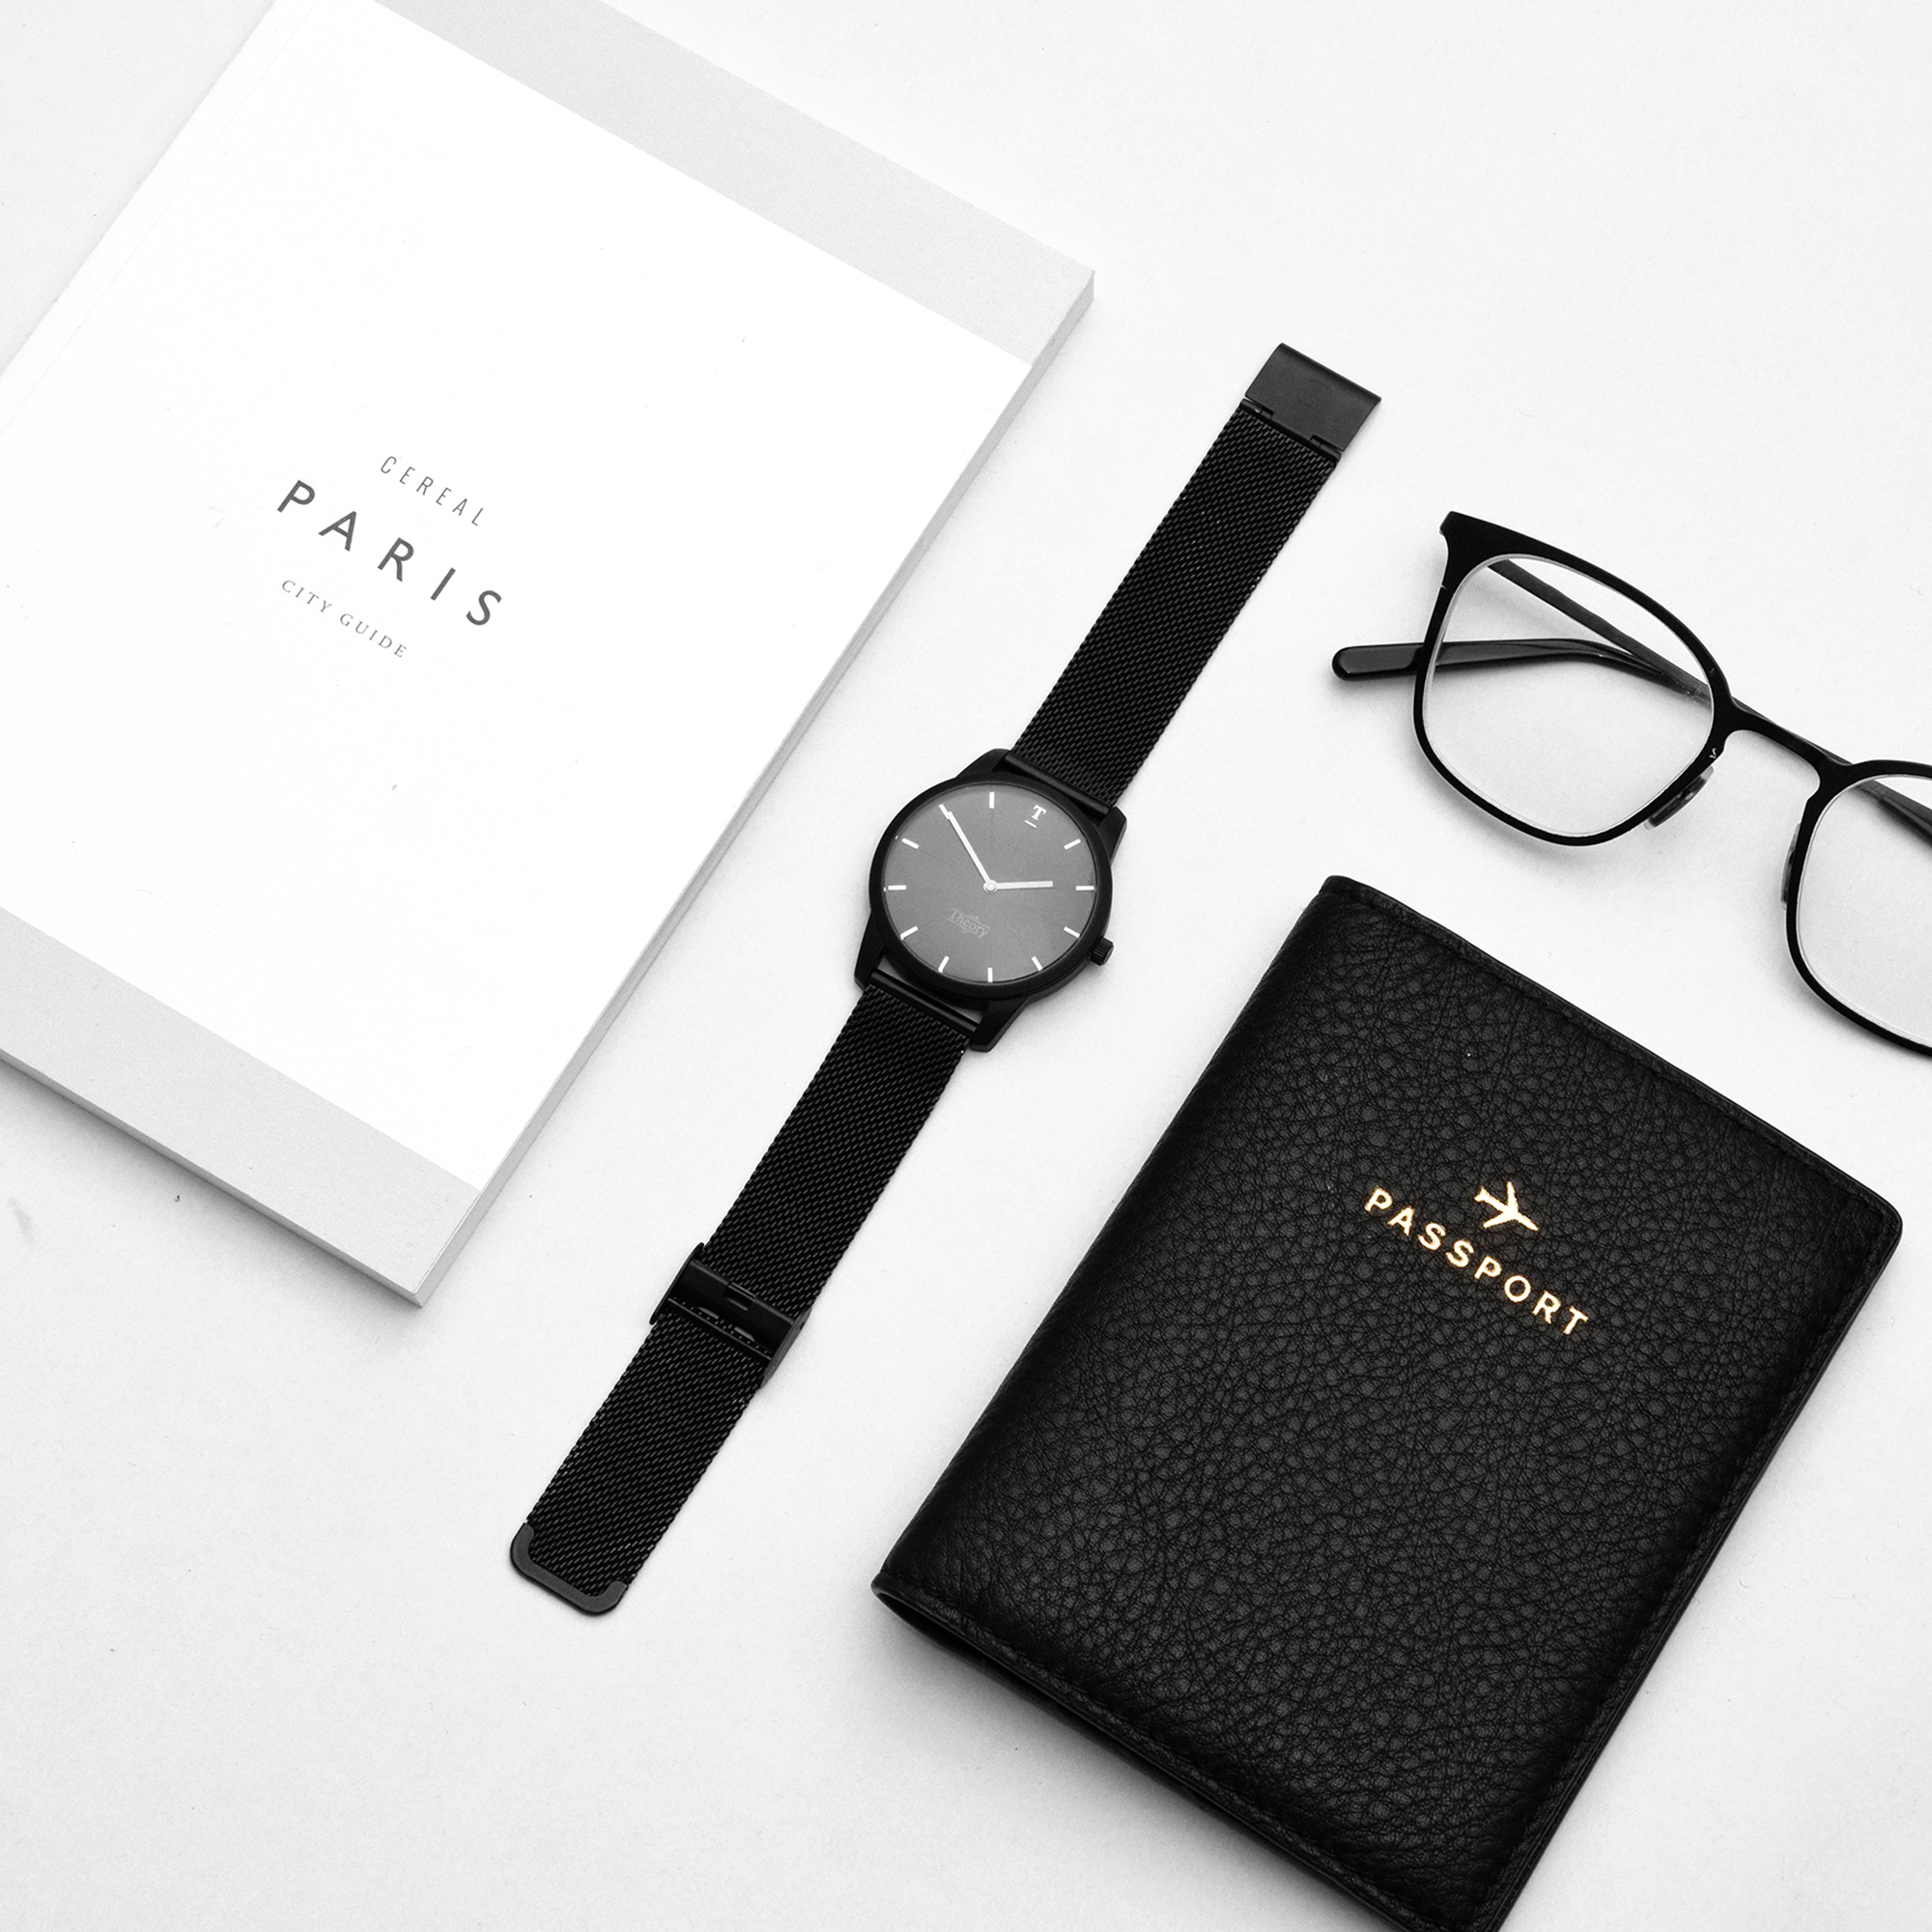 Matthijs Kok | Pinterest Photography for Our Theory Of Watches